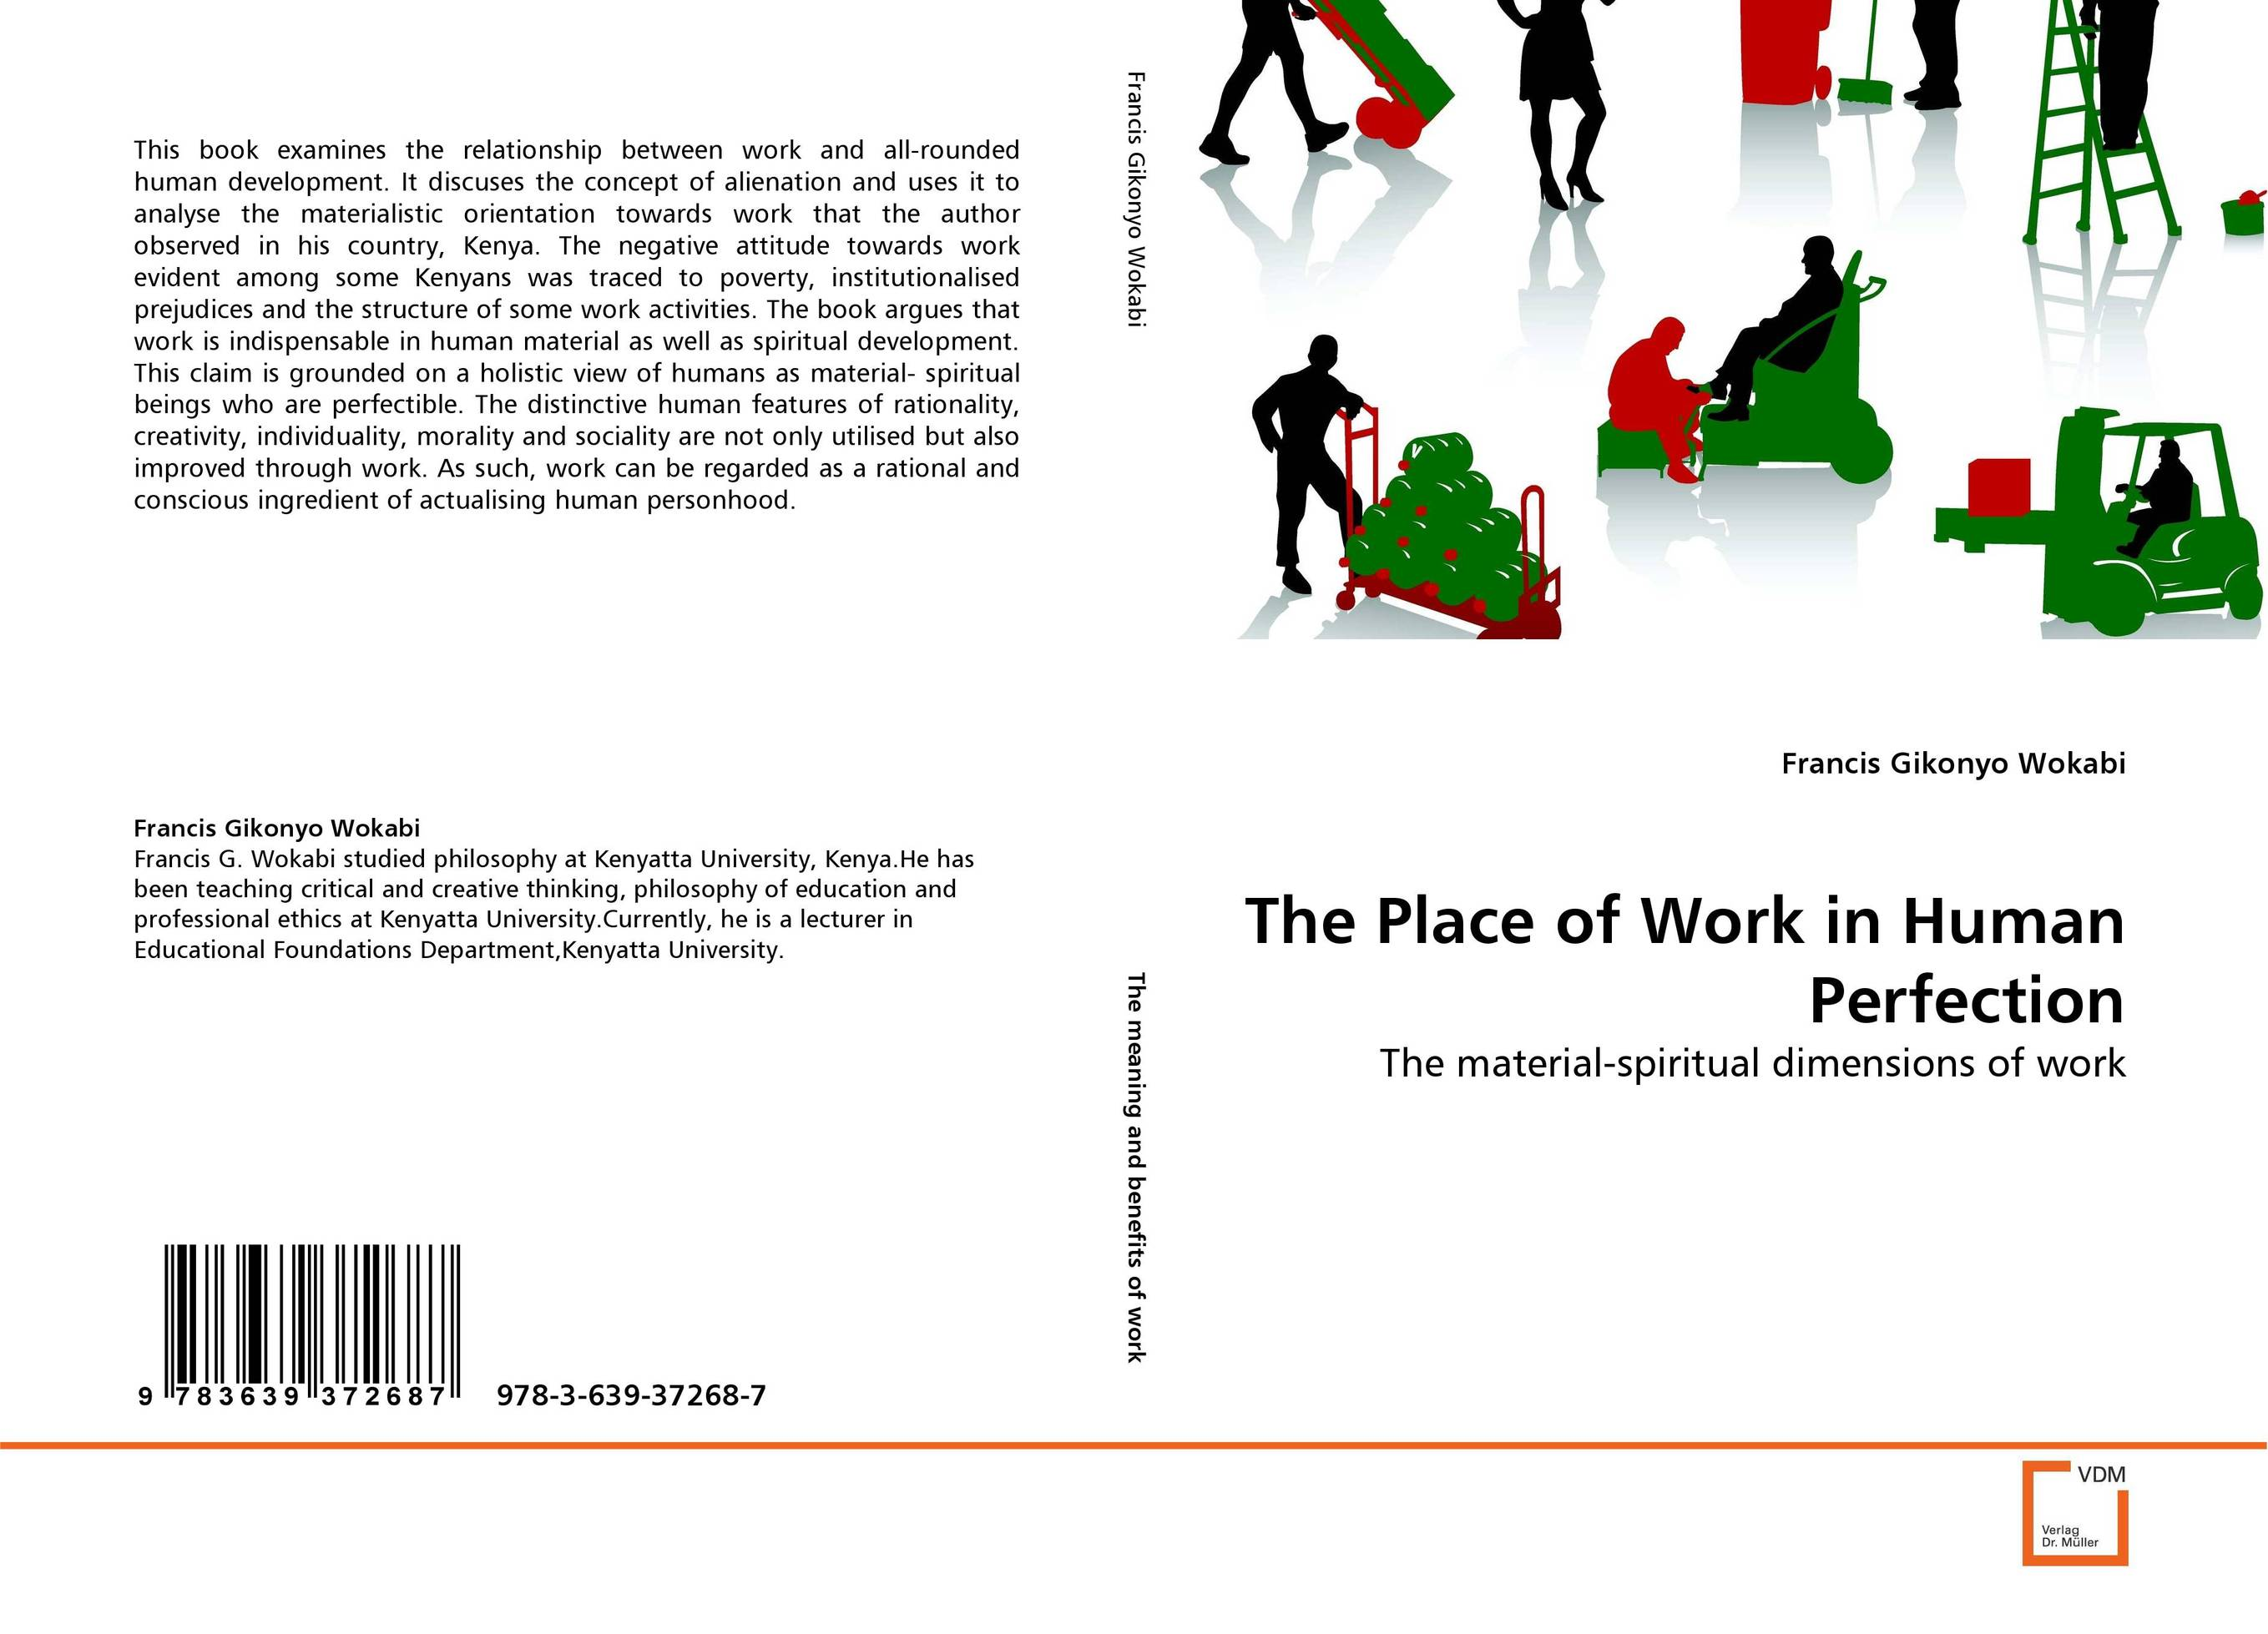 The Place of Work in Human Perfection